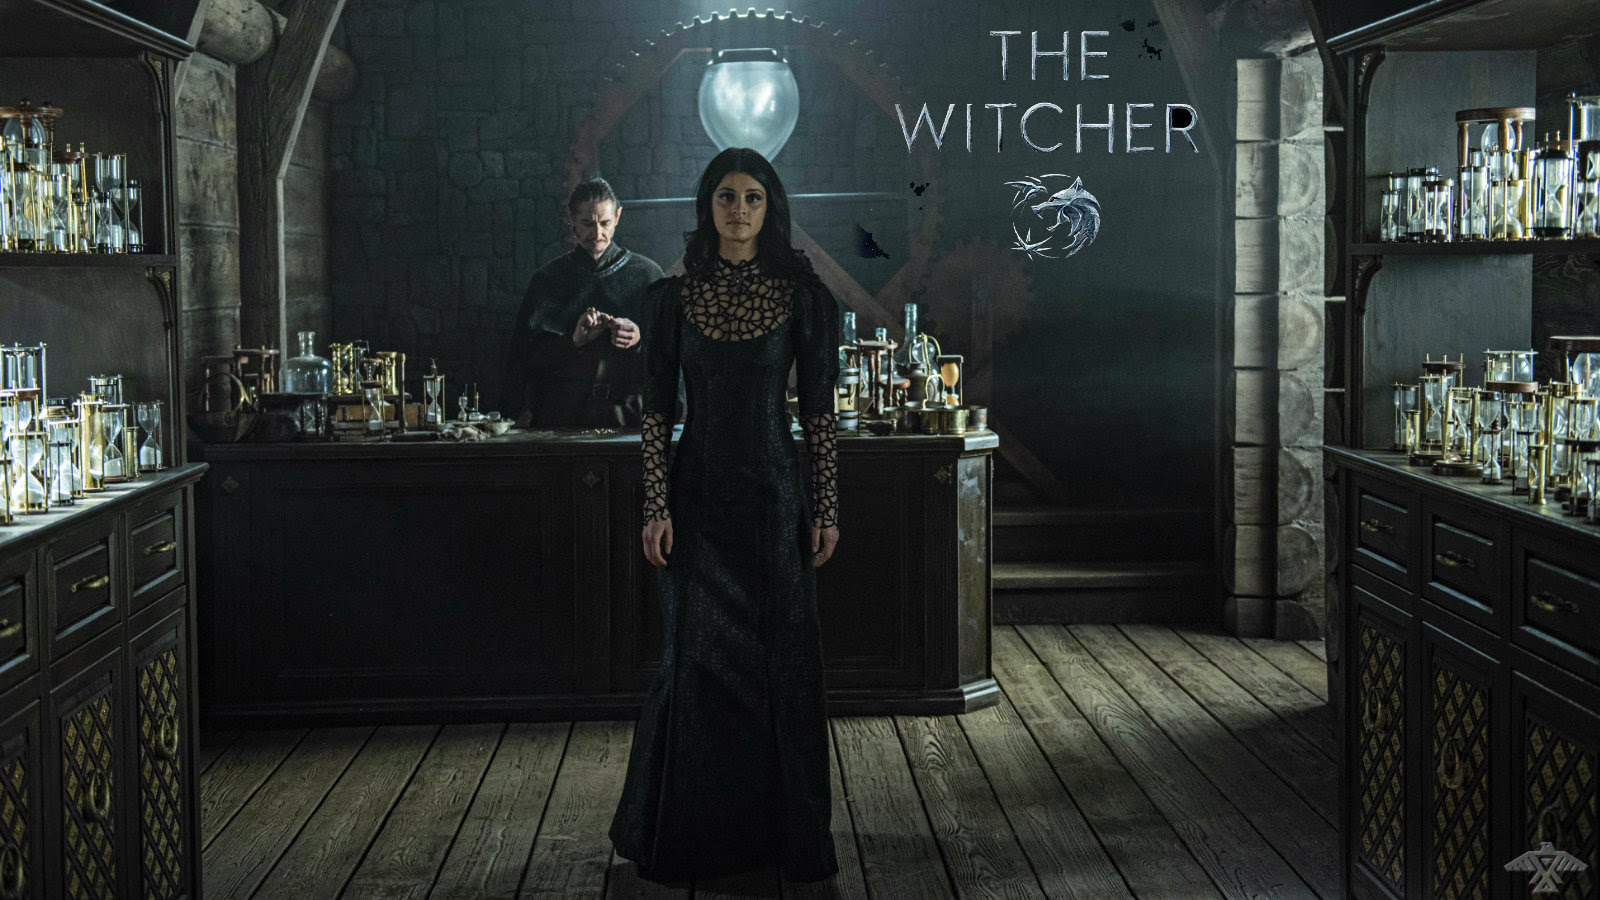 Yennefer The Witcher 2019 The Witcher Netflix Wallpaper